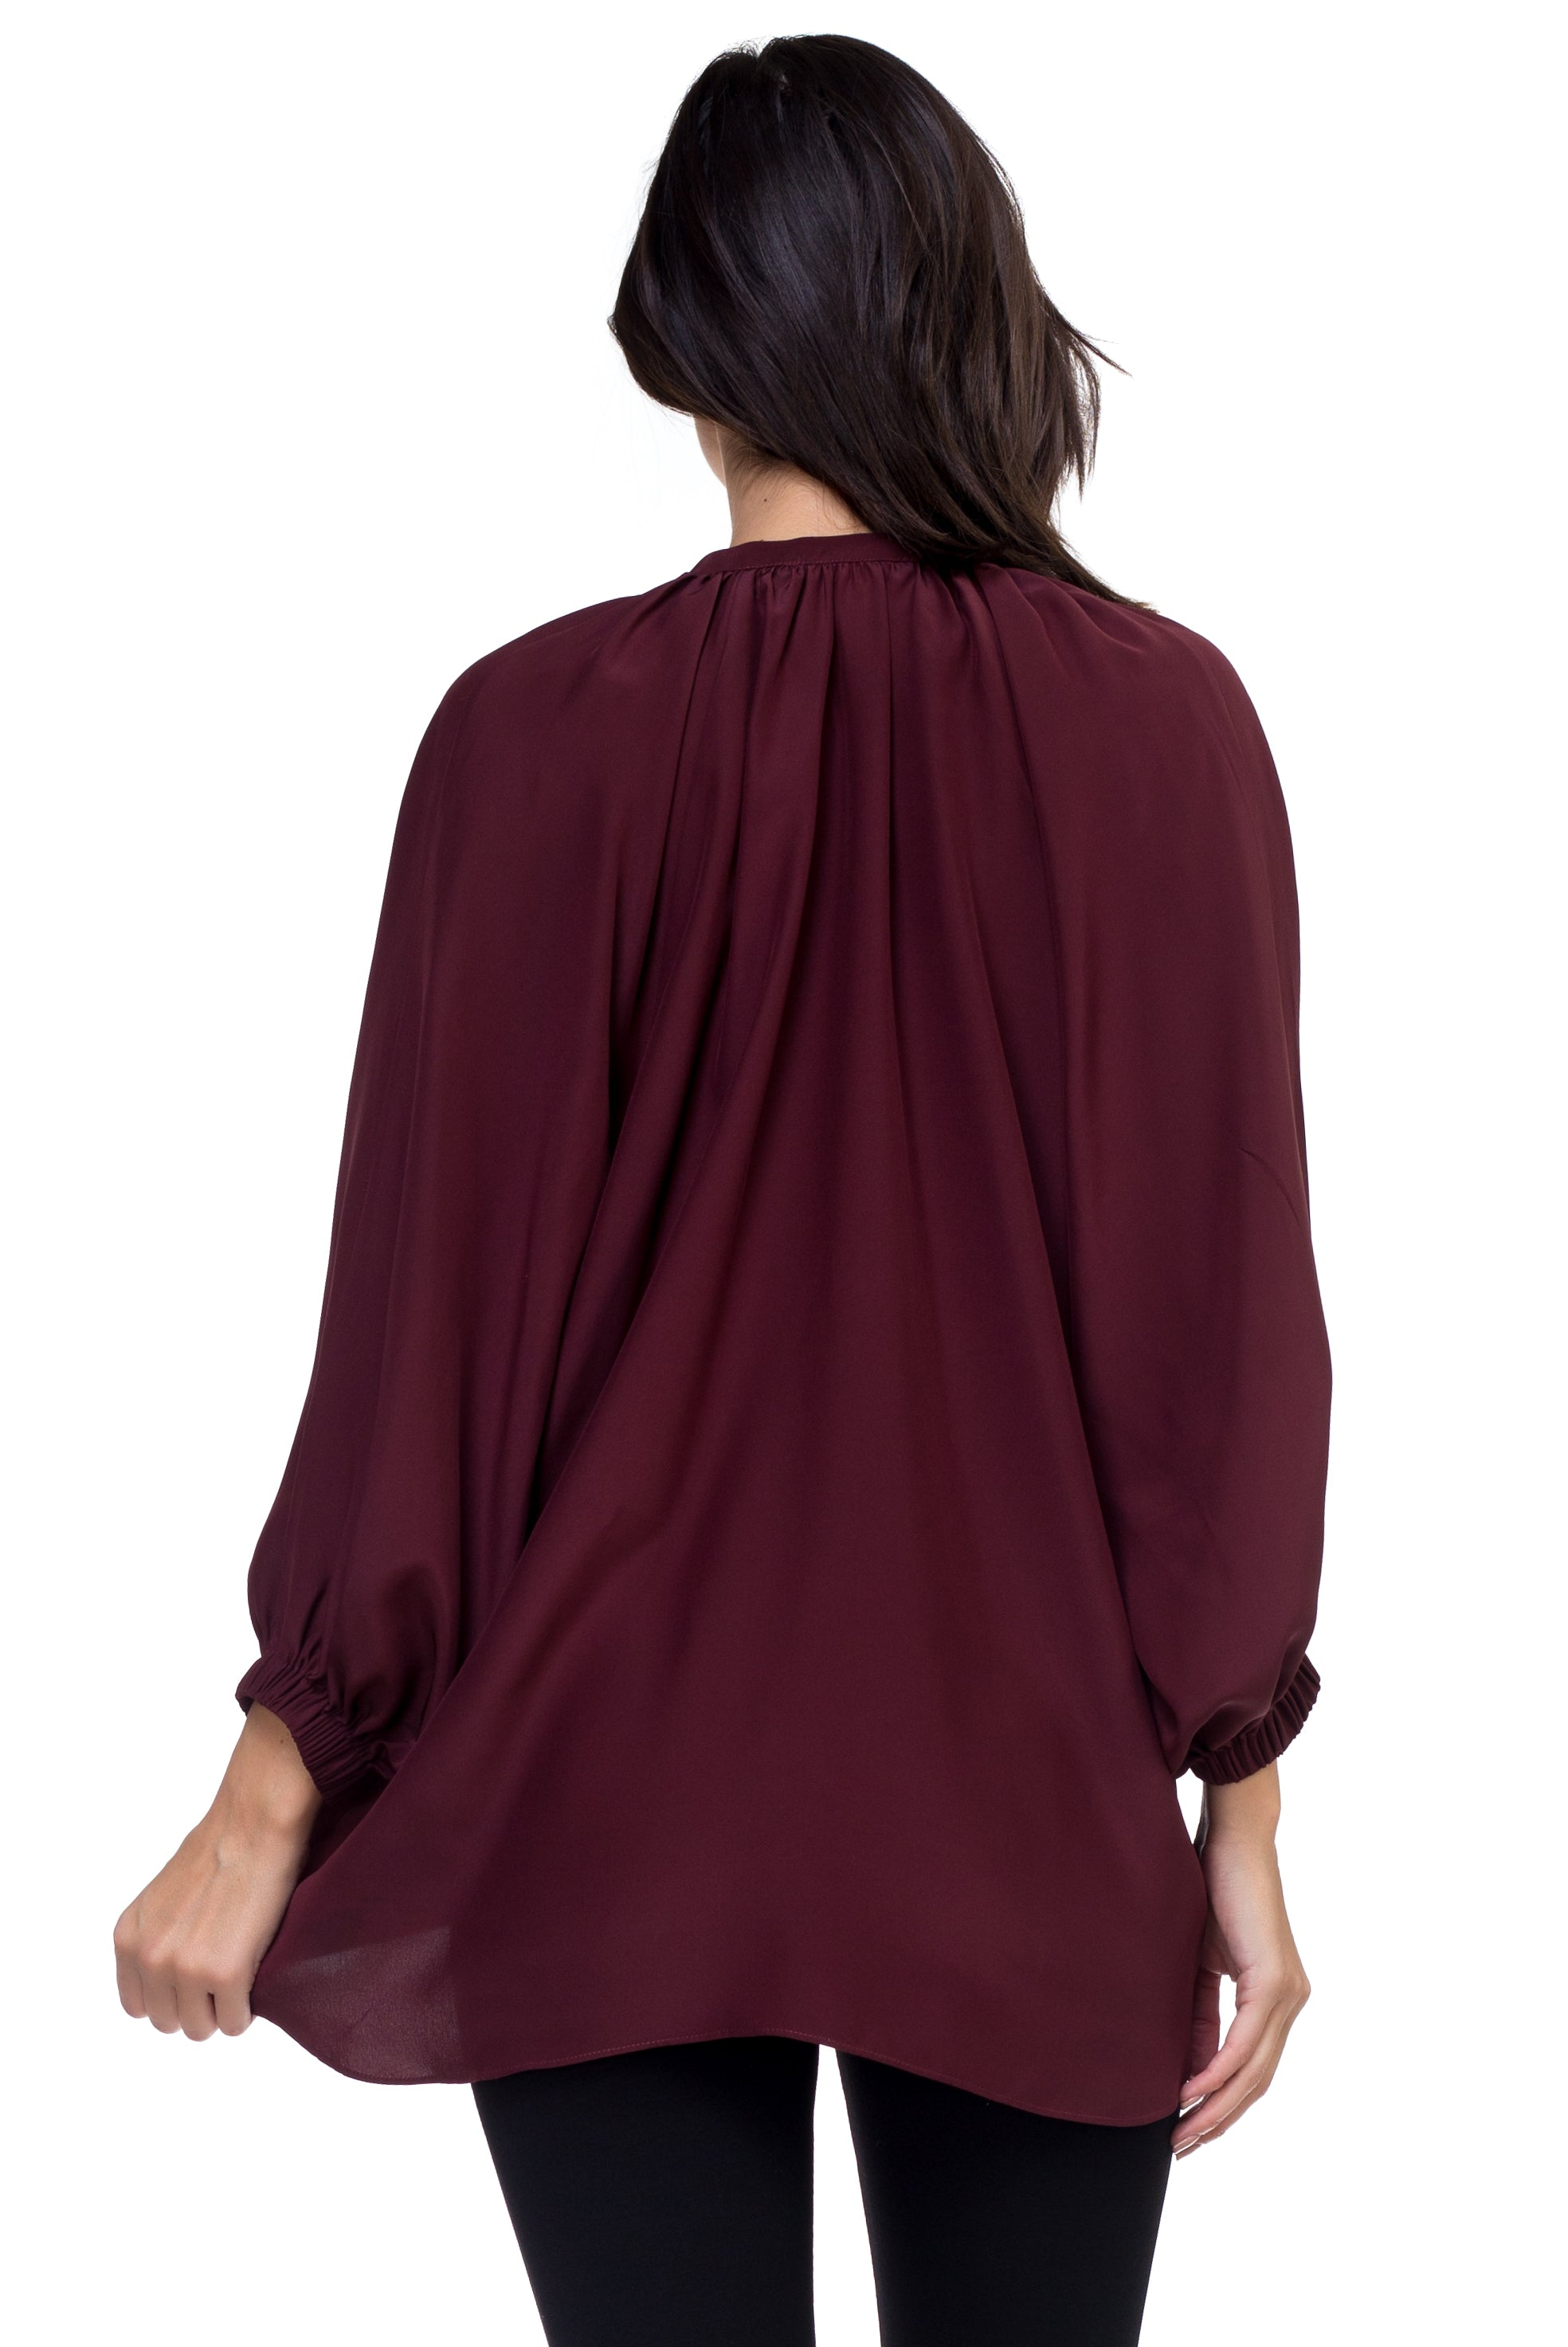 Ana - Airy Silk Blouse Forest burgundy